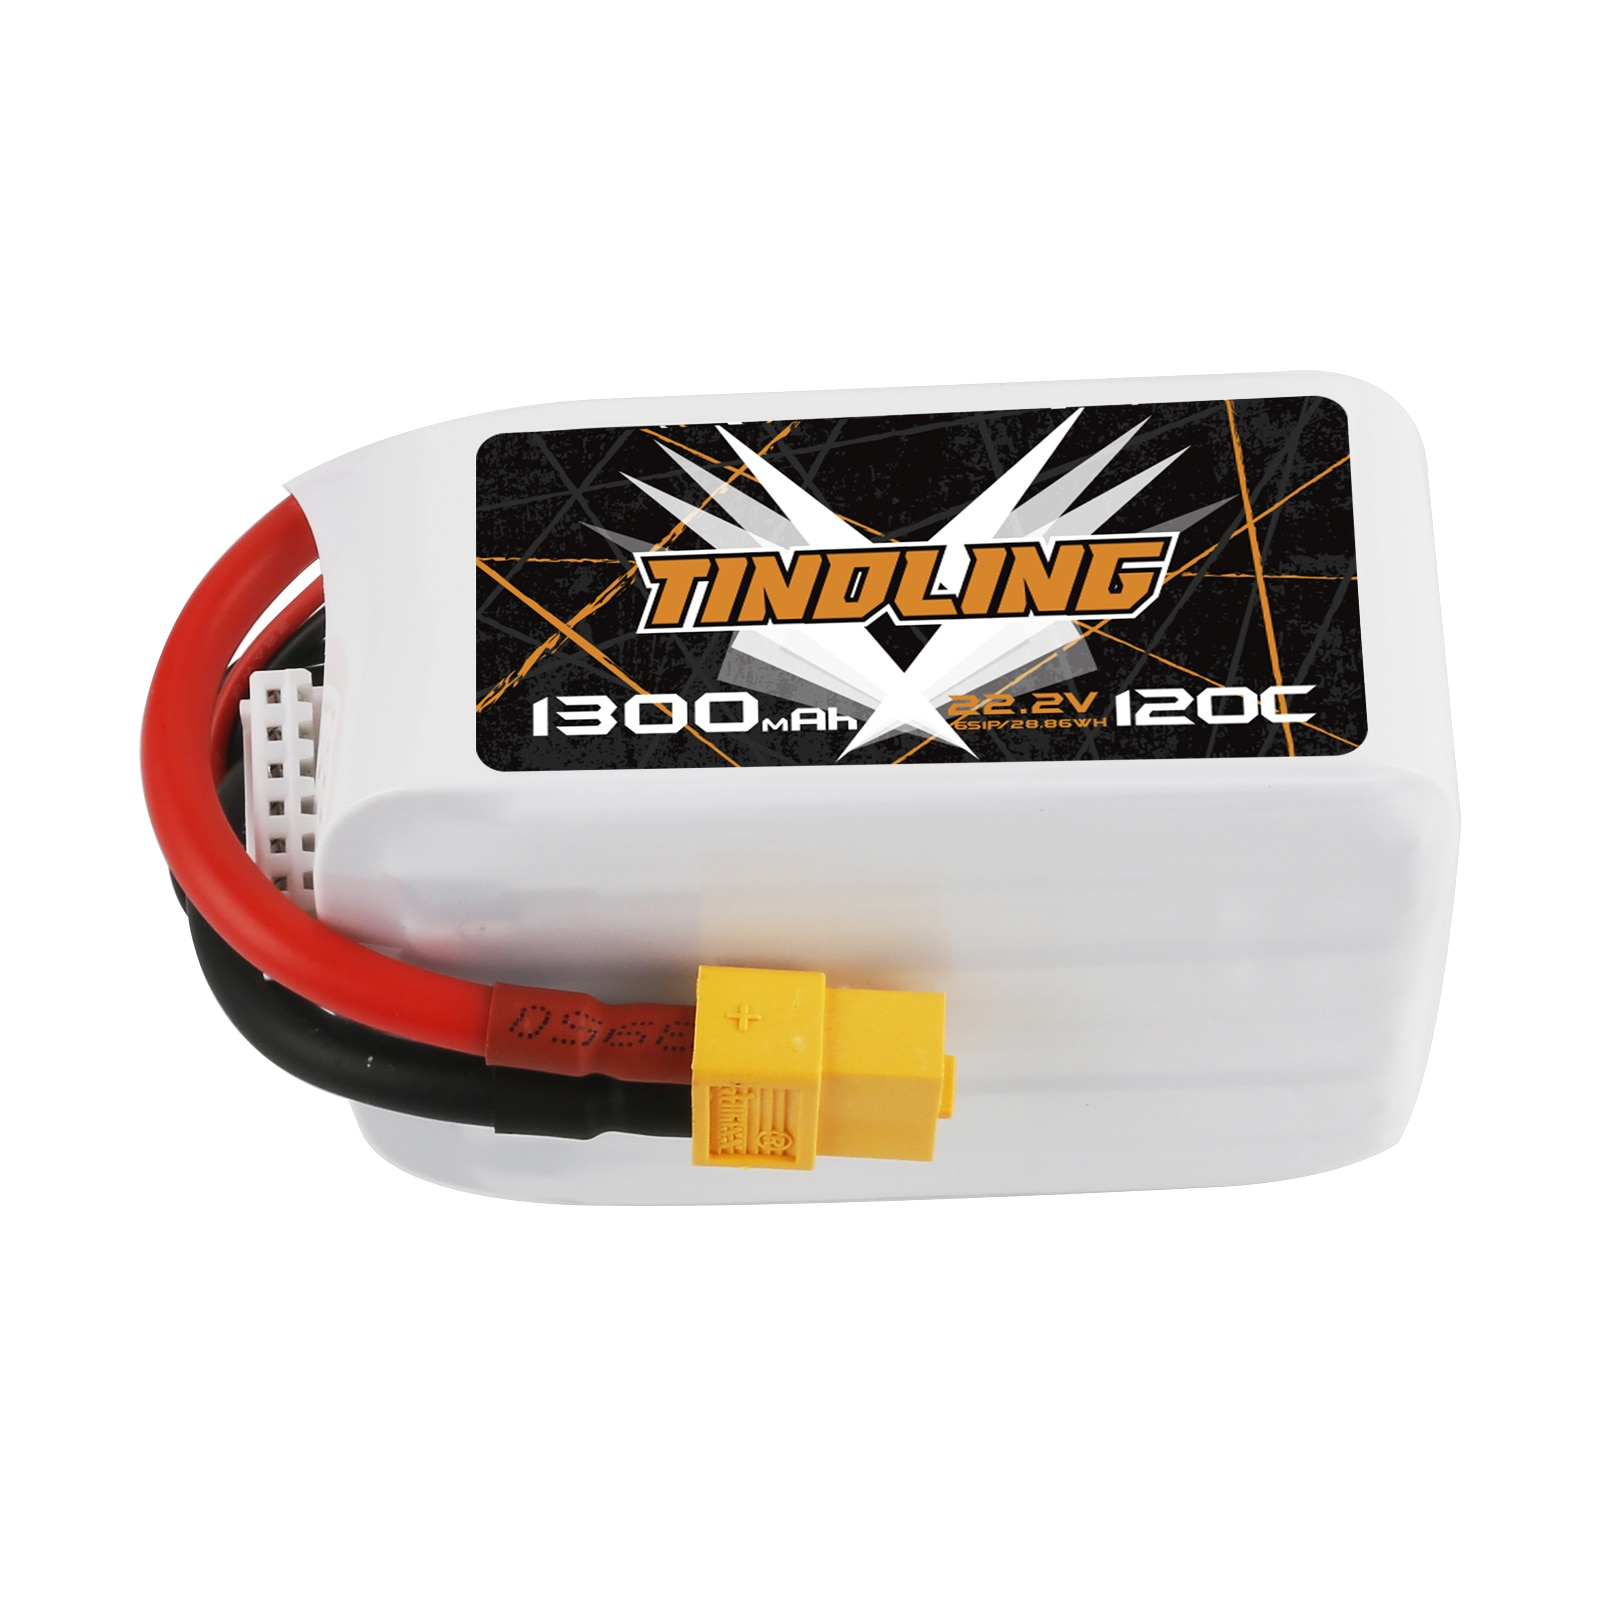 2PCS 1300mAh 120C 22.2V Lipo Battery  For RC Aircraft Quadrotor Drone Airplane 6S Batteries for Battery XT60 plug For RC Drone enlarge